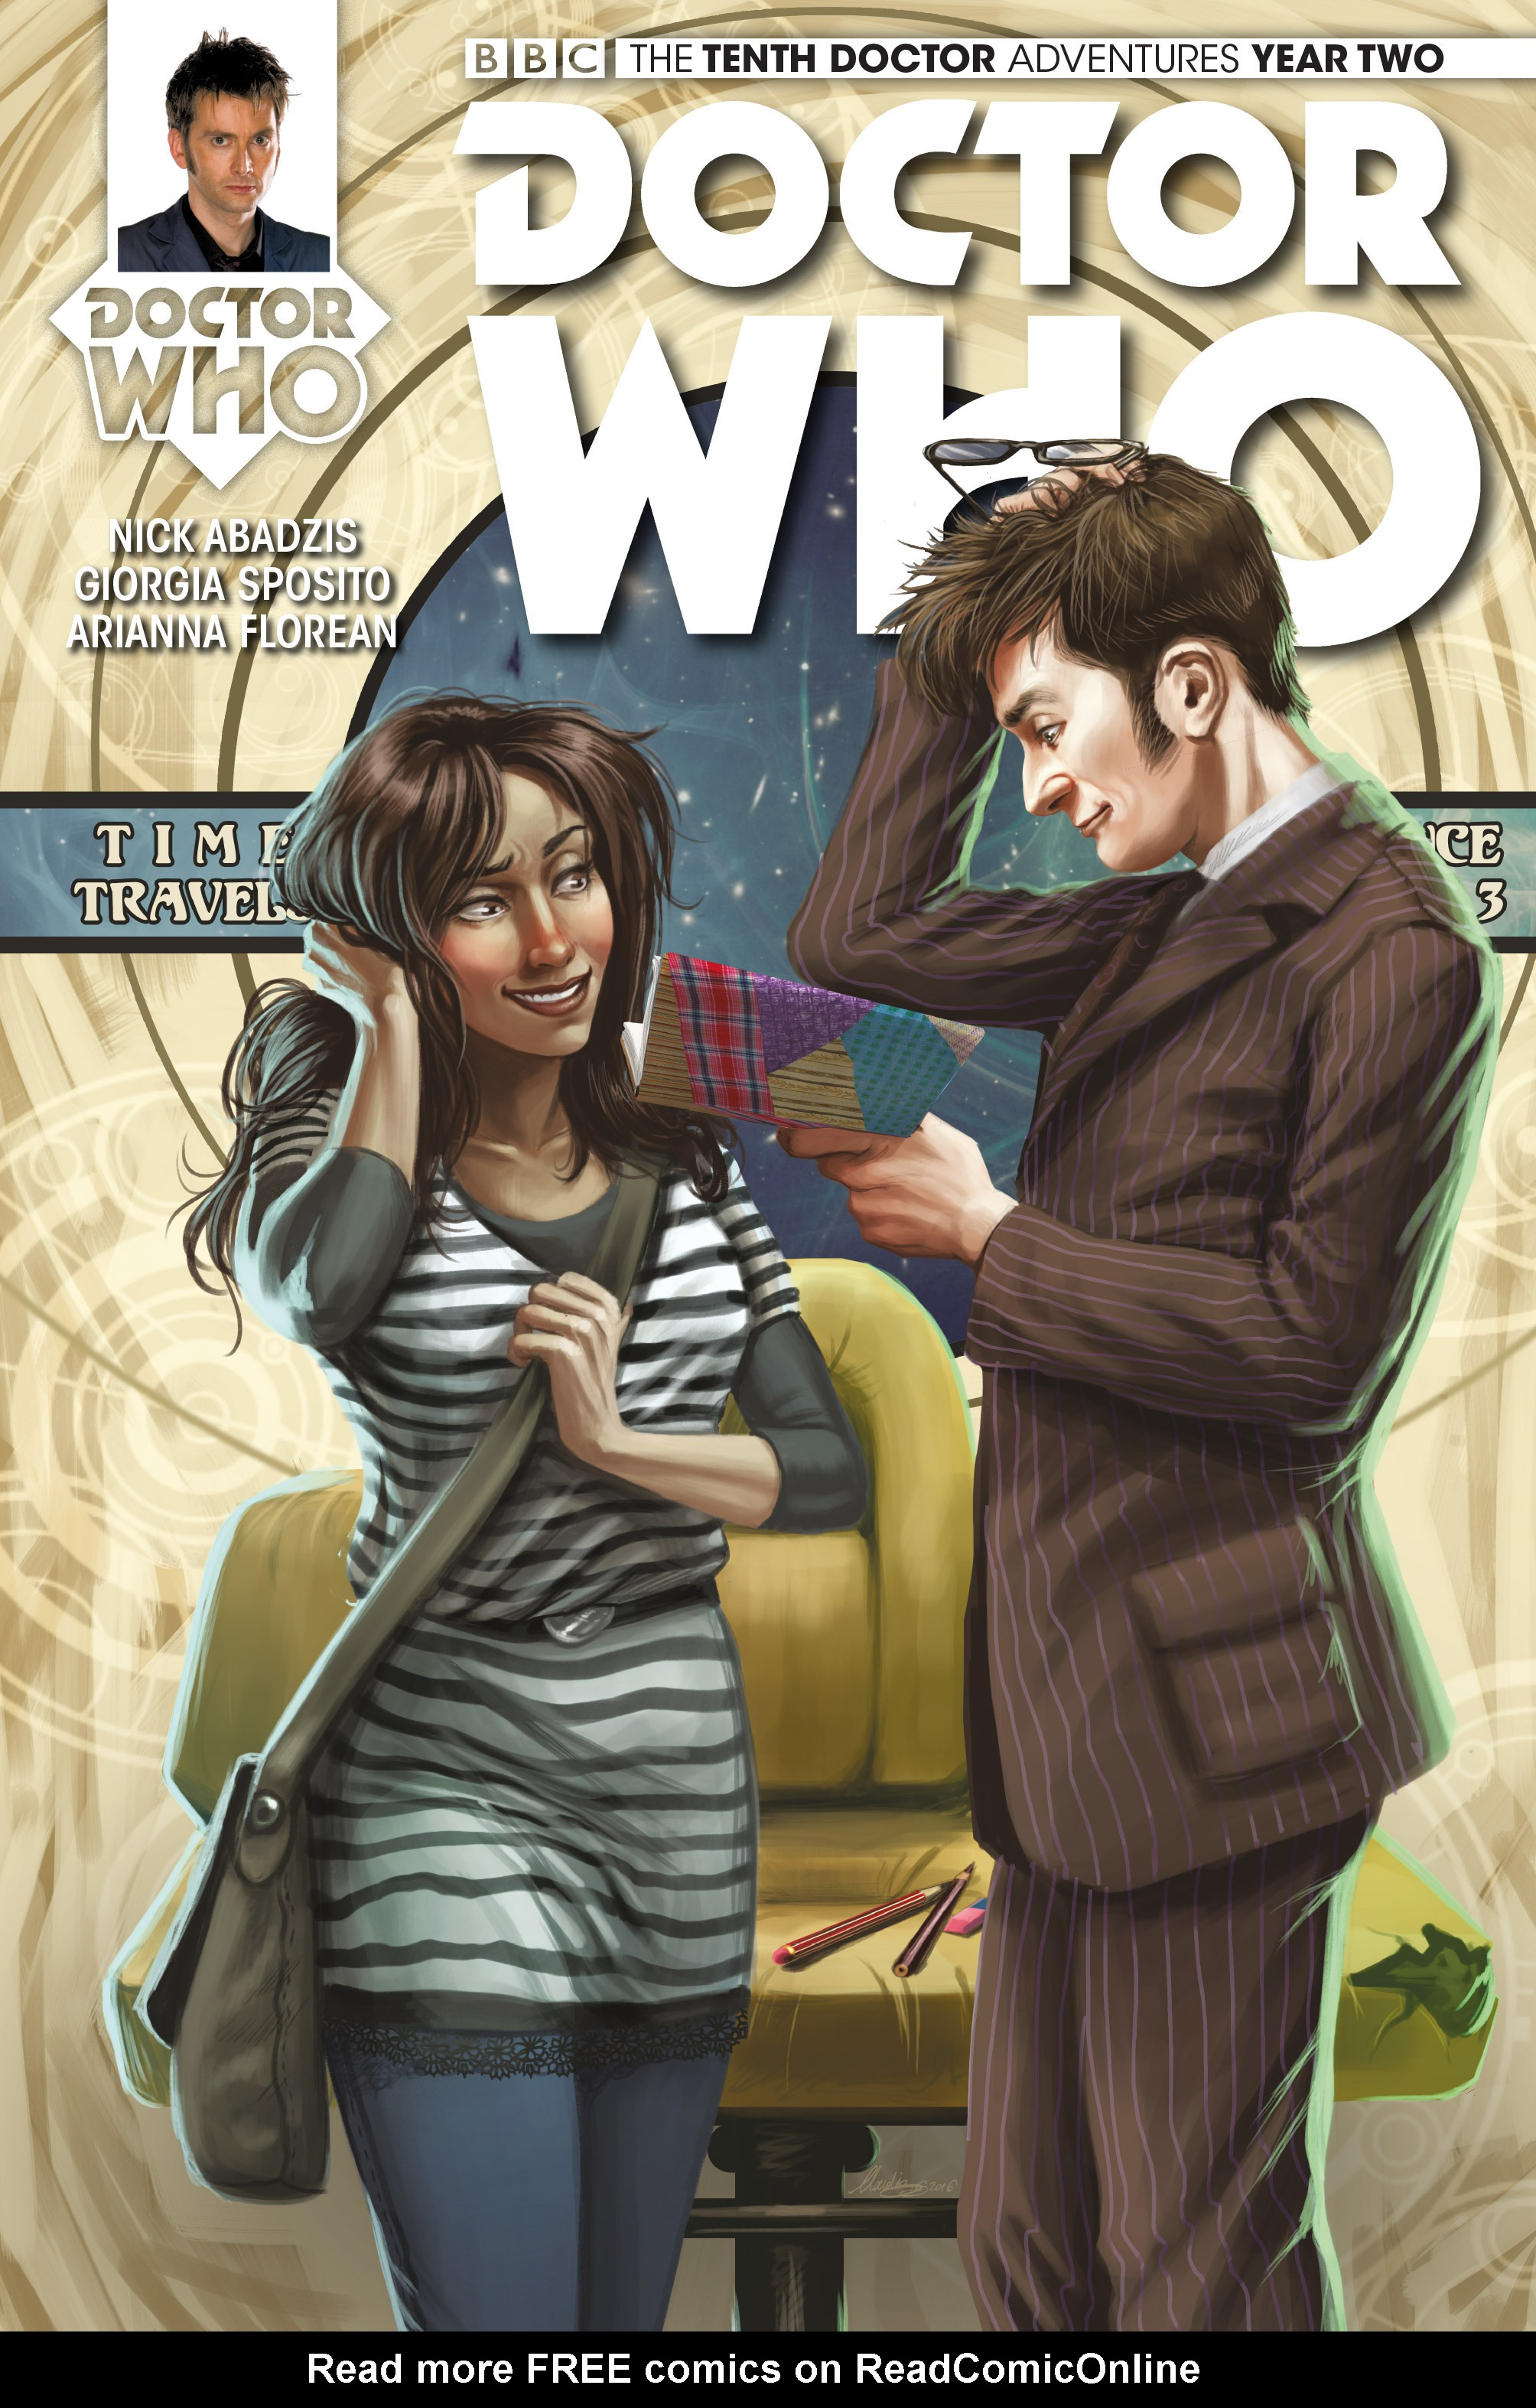 Doctor Who: The Tenth Doctor Year Two 12 Page 1